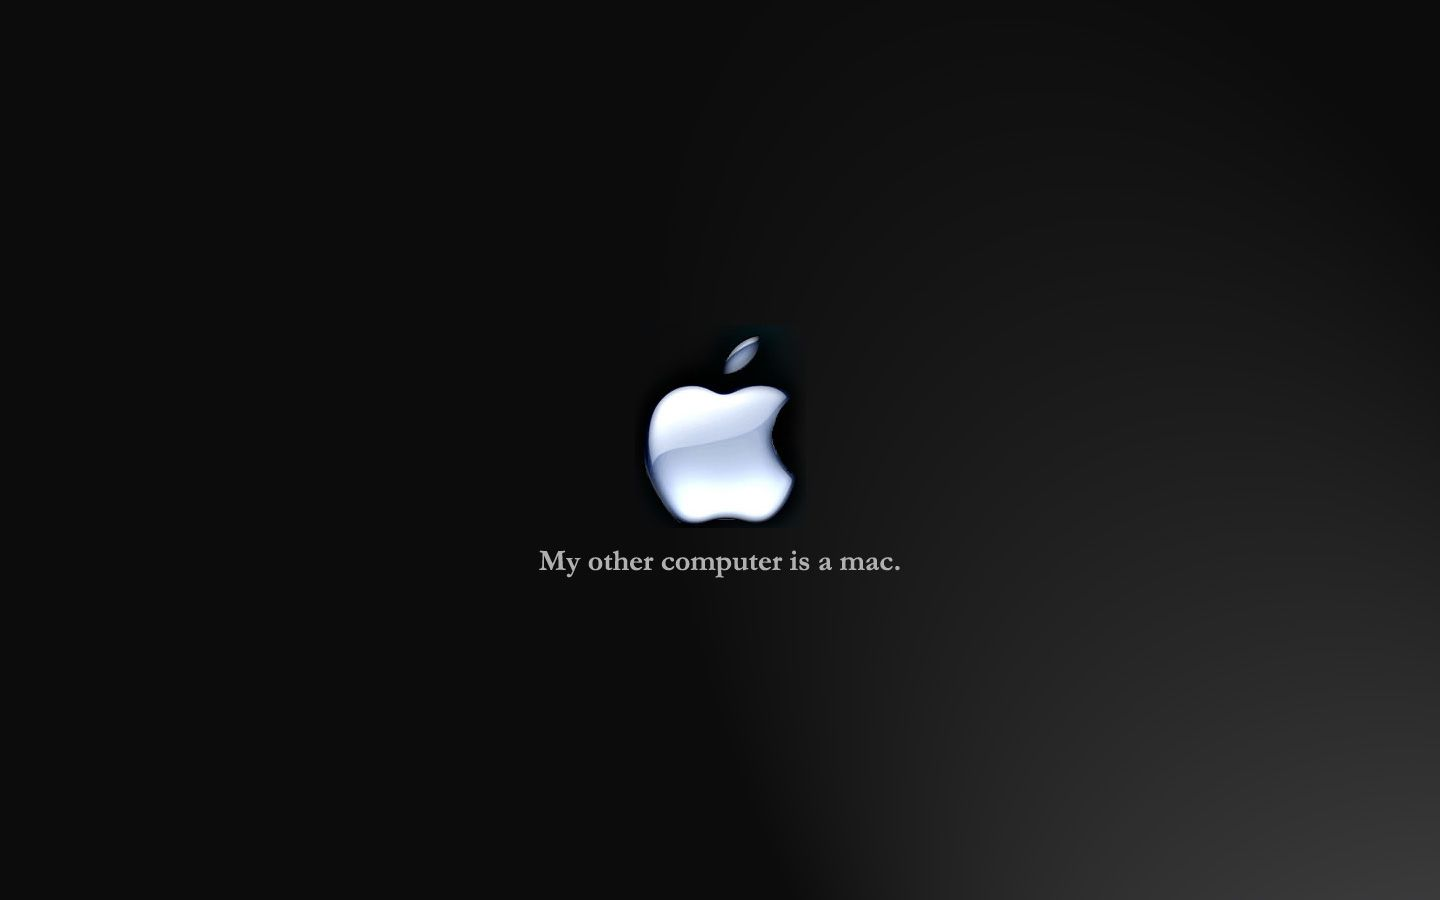 Cool Wallpaper Macbook Simpsons - 1V5xsO  Graphic_100754.jpg